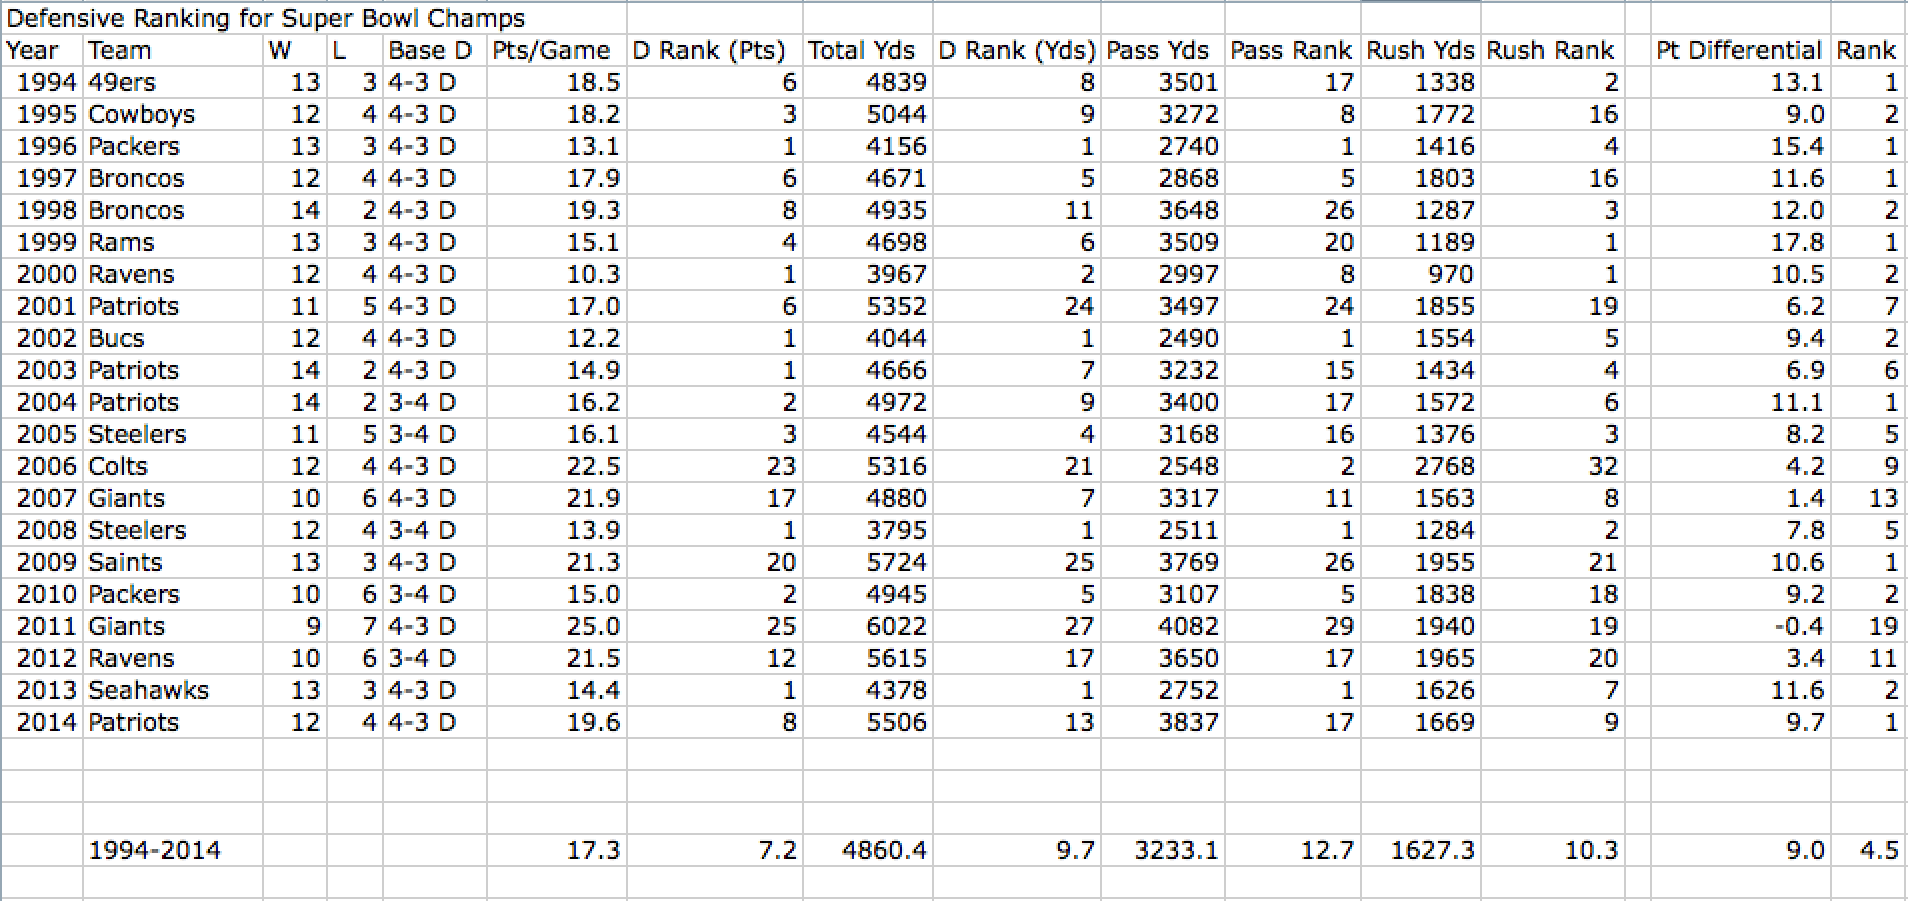 Stats for Cap Era Super Bowl Champs